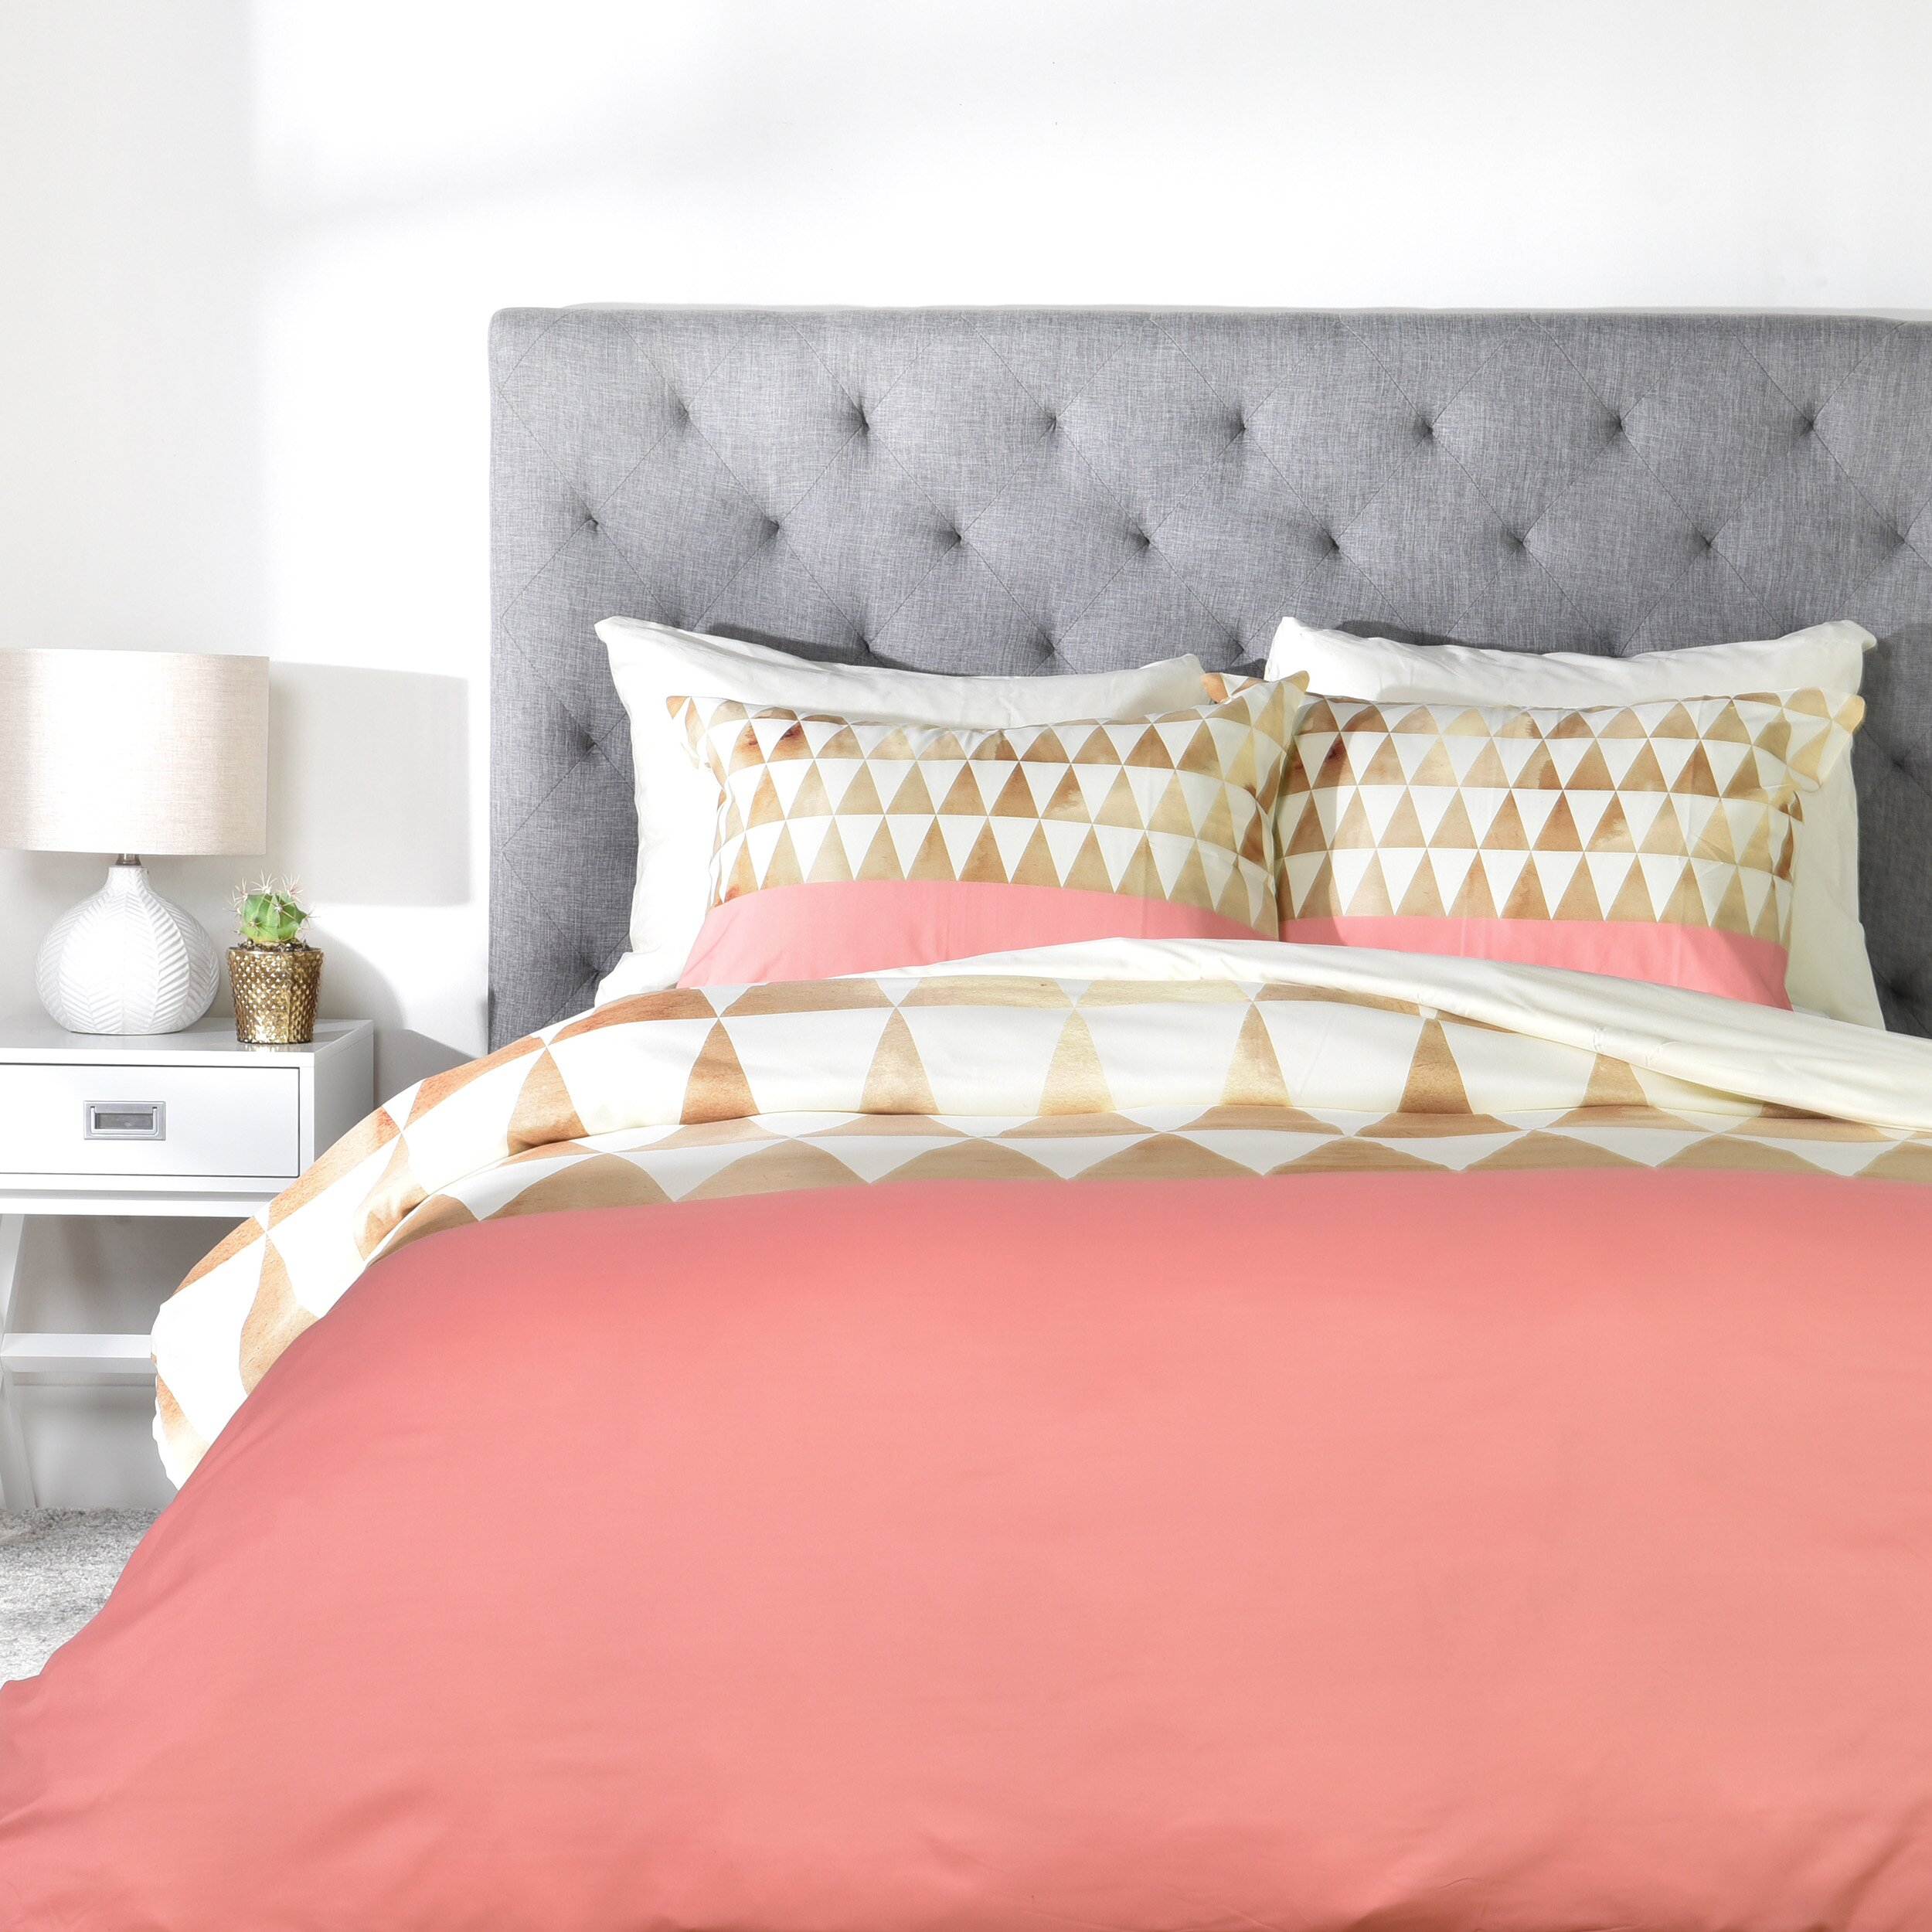 Brayden studio cloyd duvet cover collection reviews for Studio one bed cover